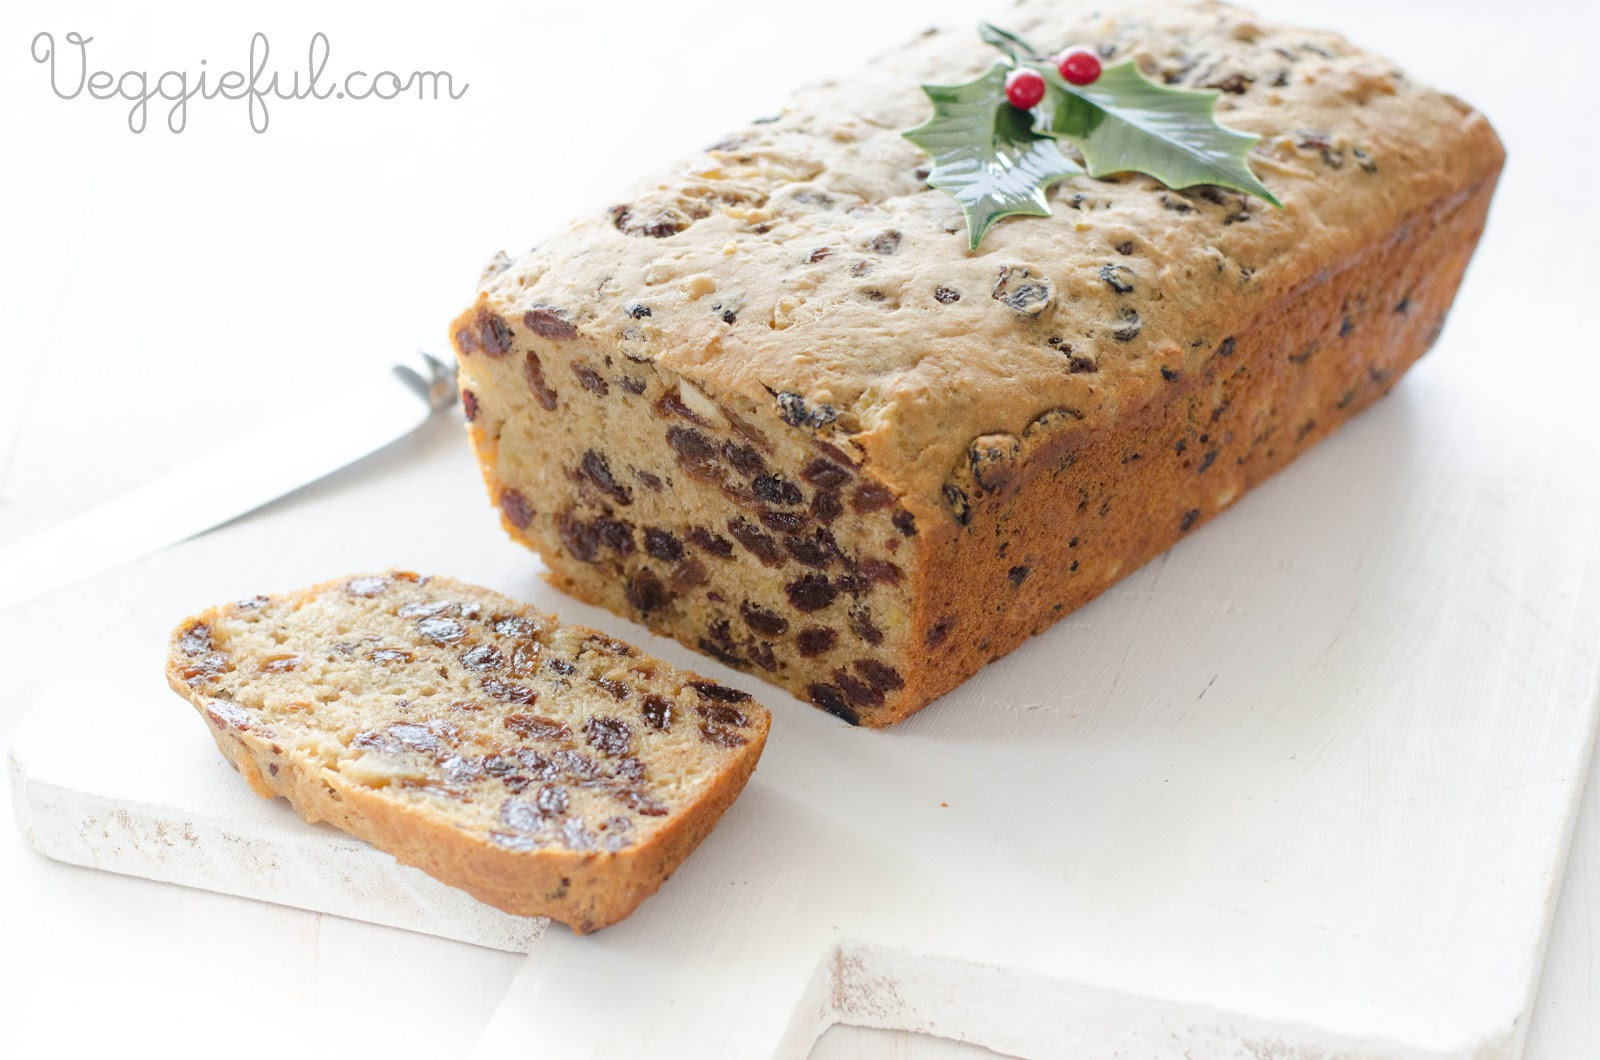 Vegan Fruit Cake Recipe